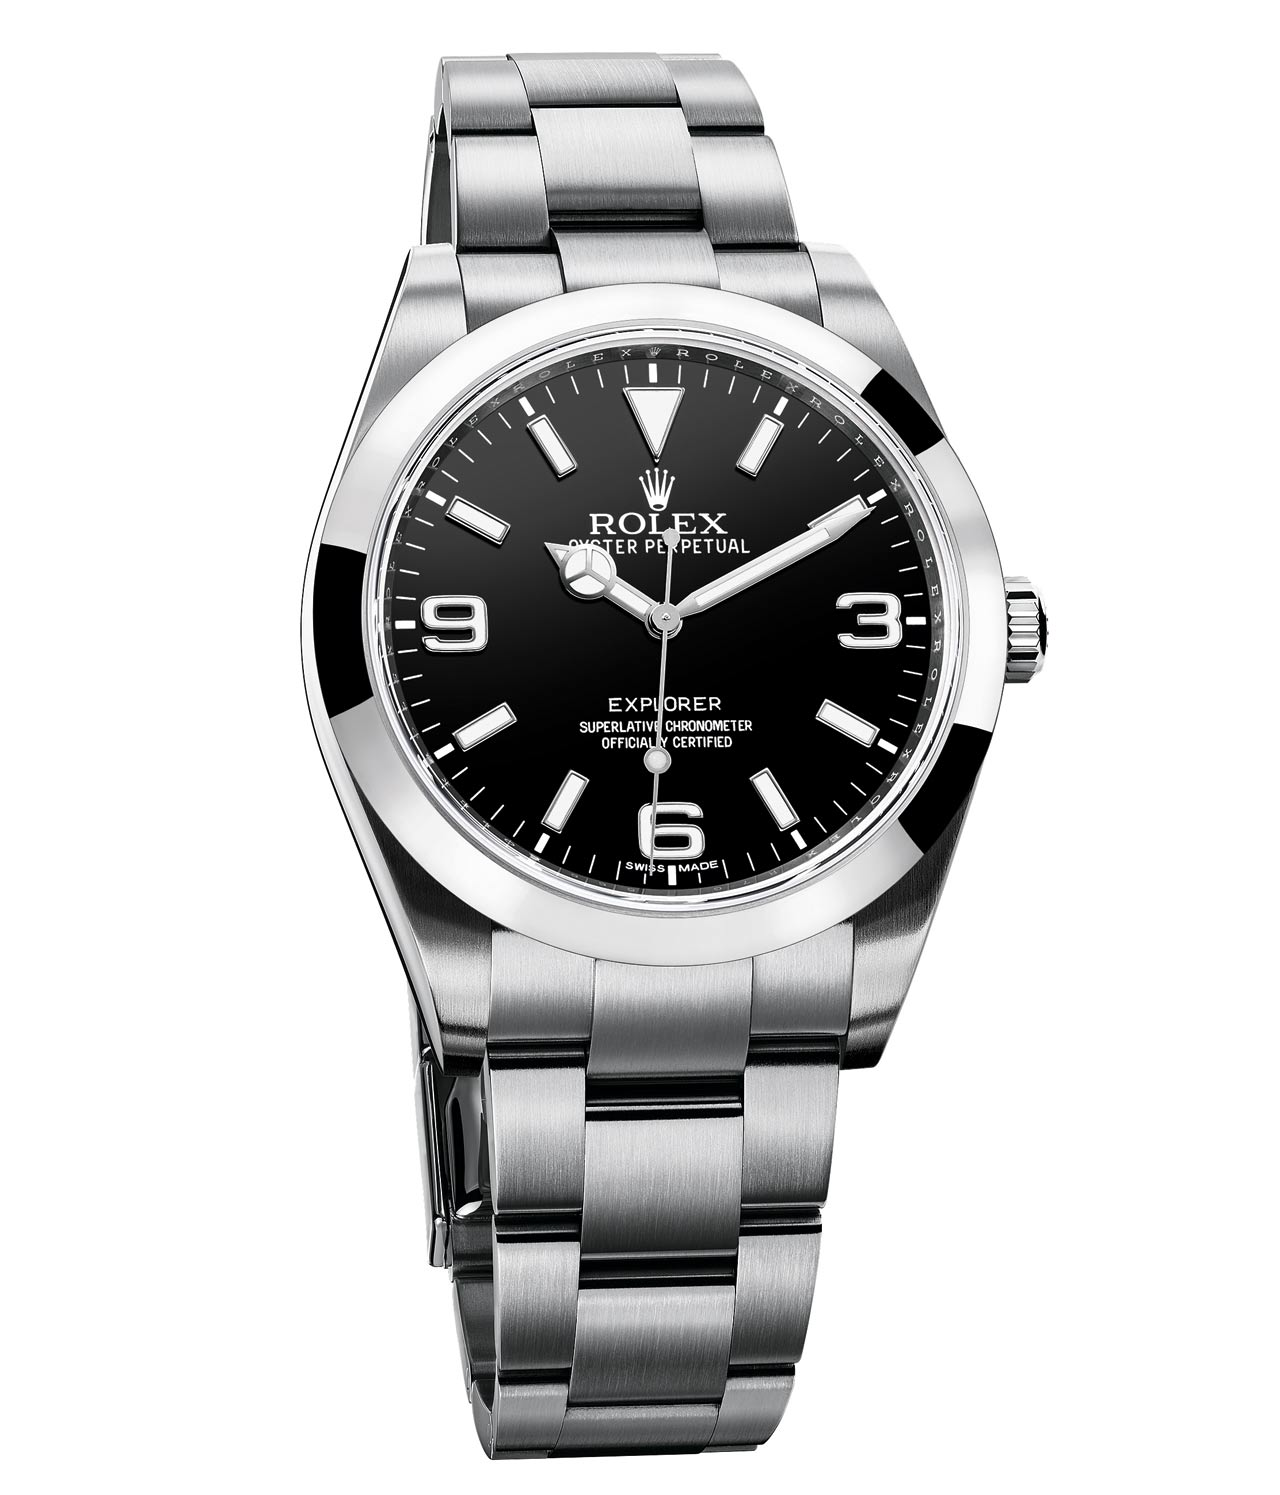 Rolex new oyster perpetual explorer ref 214270 time and watches for Rolex explorer